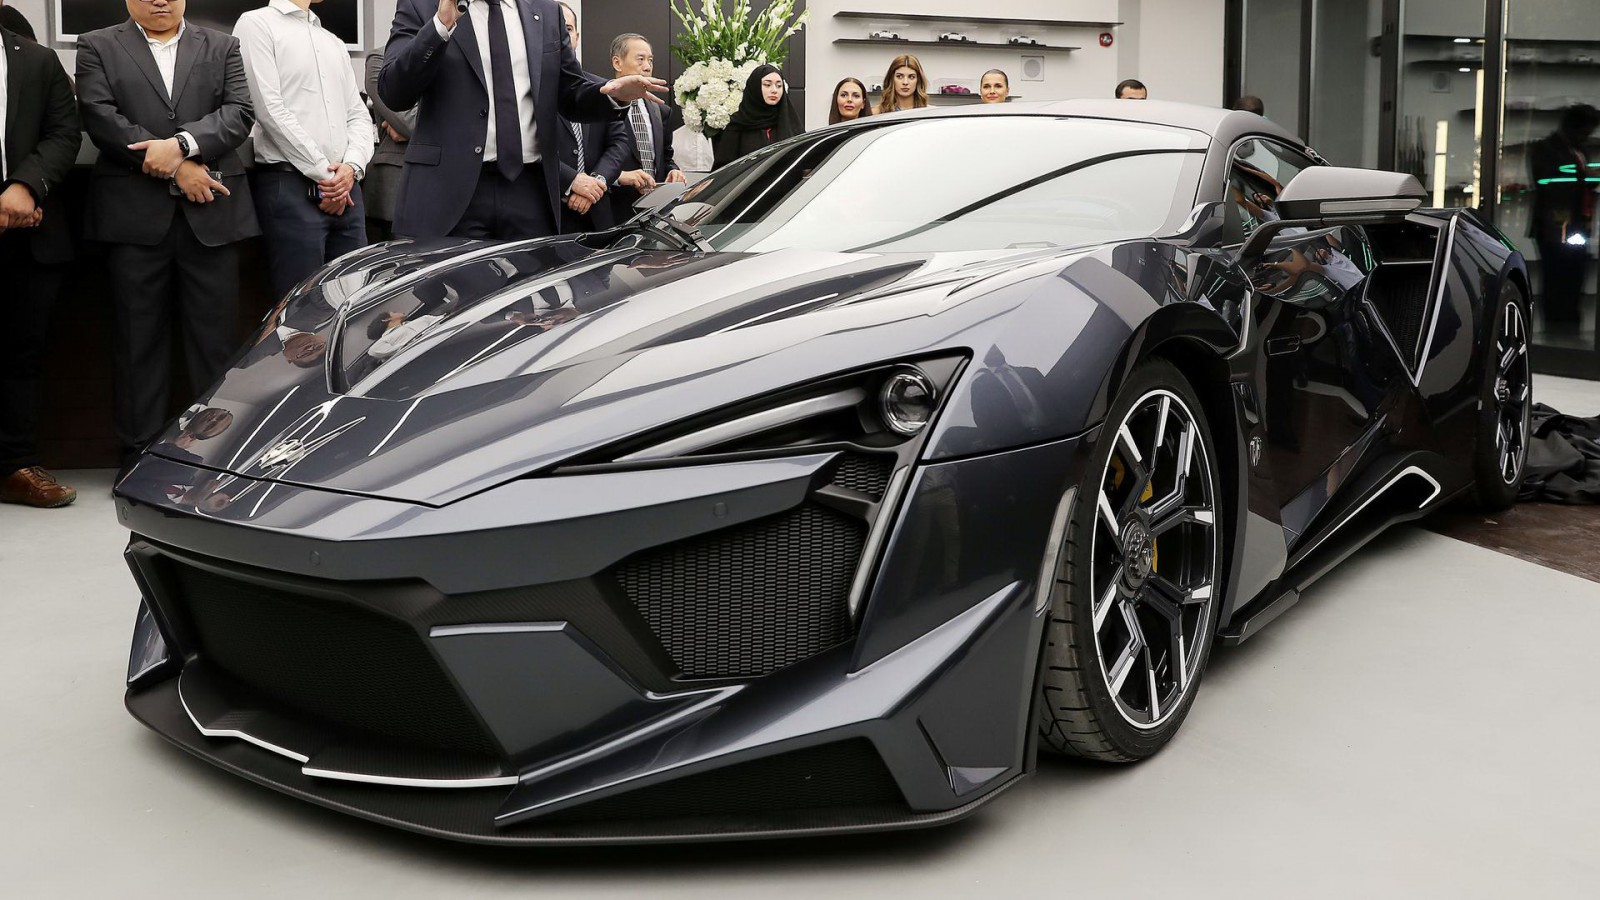 (video) Premieră în Dubai: Noul hipercar de serie Fenyr SuperSport